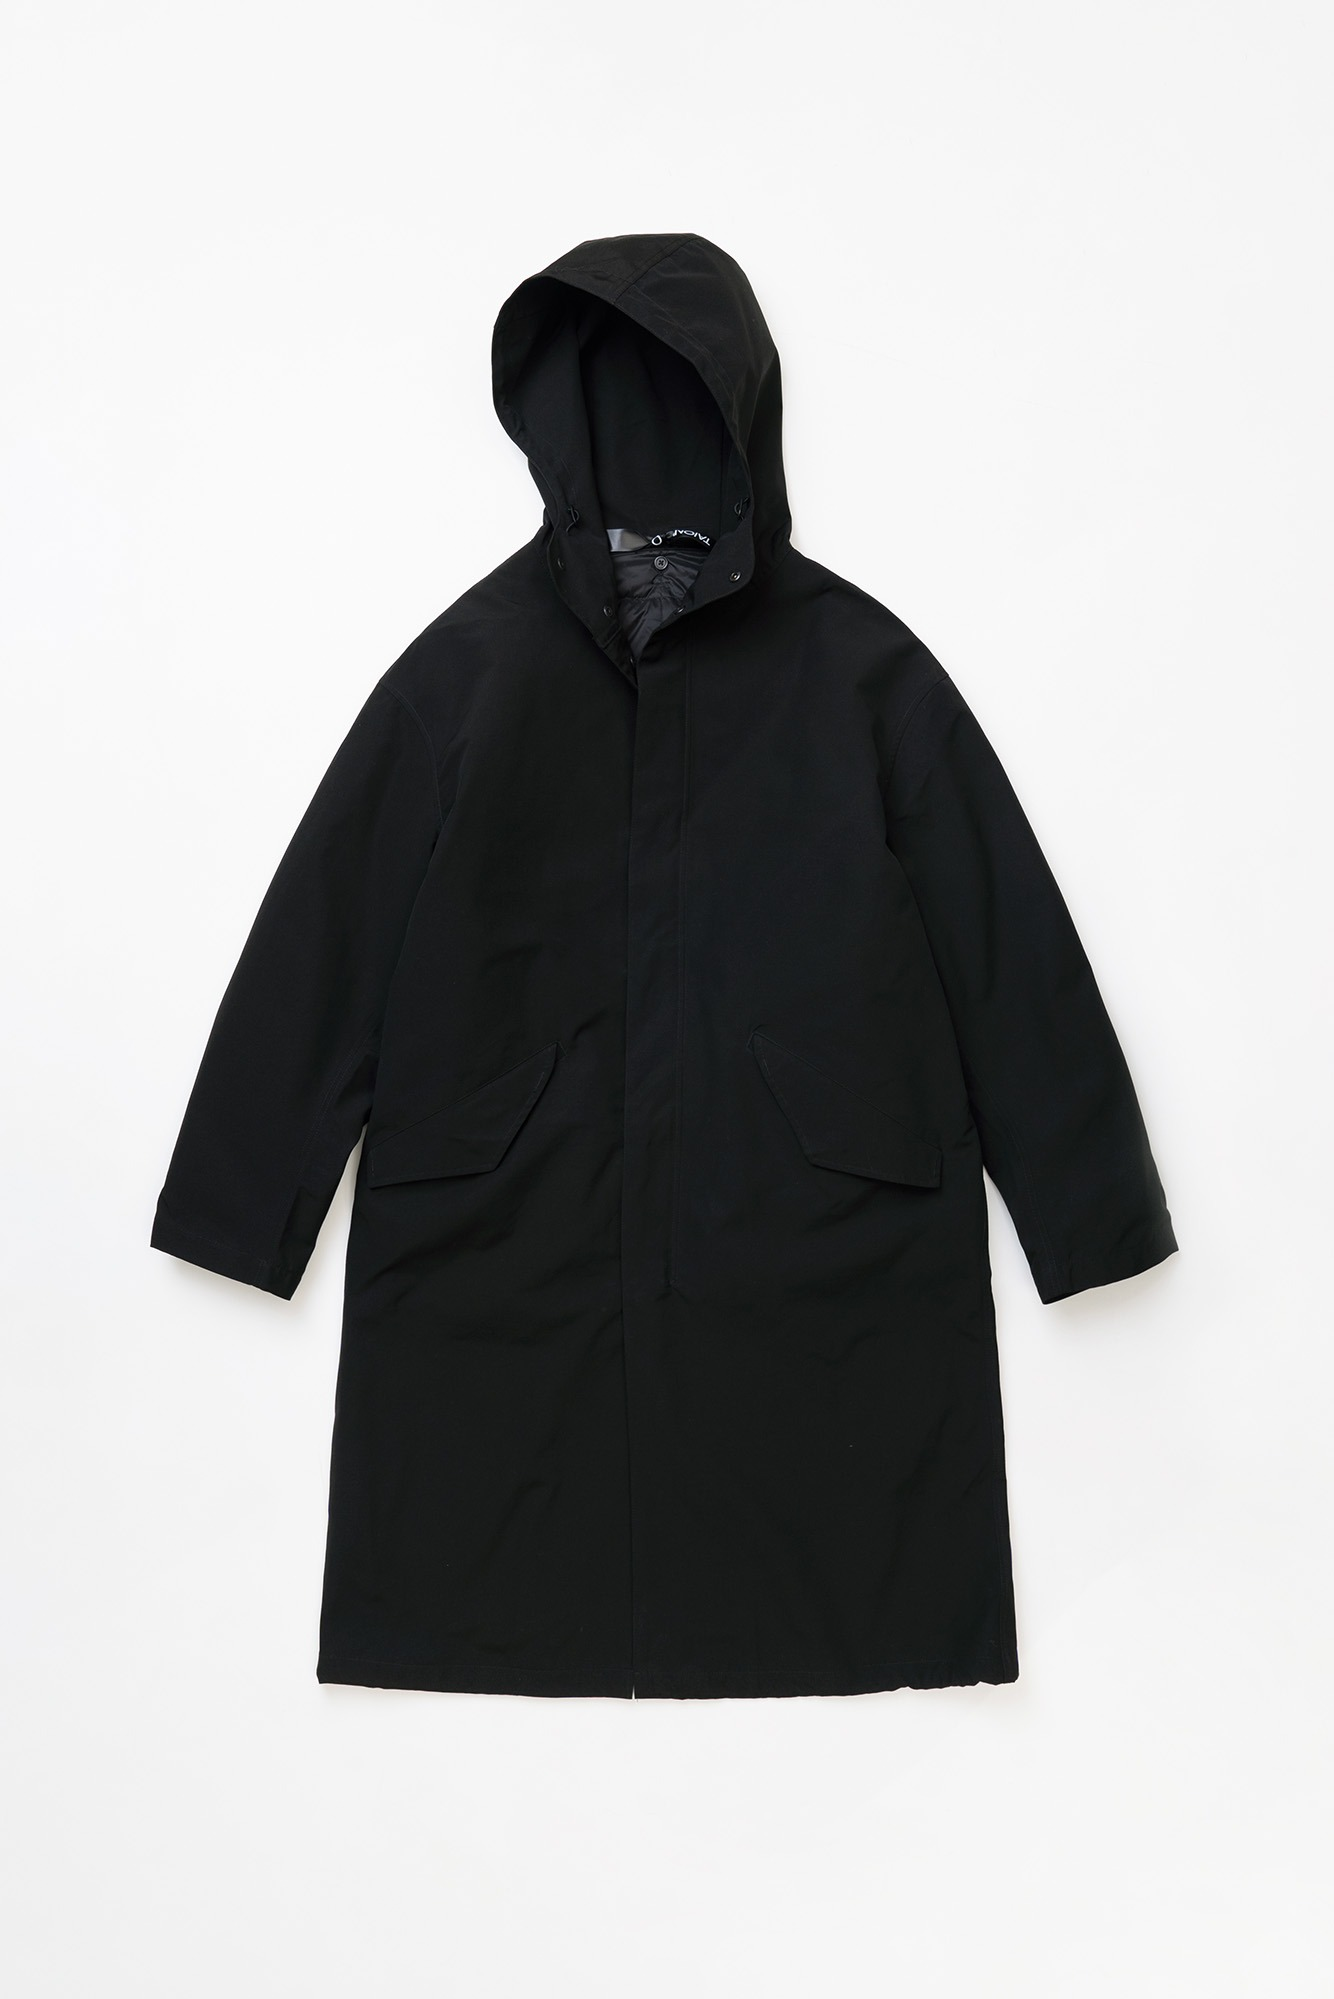 "TAION CR Hood Coat Set ""Black/Black"""